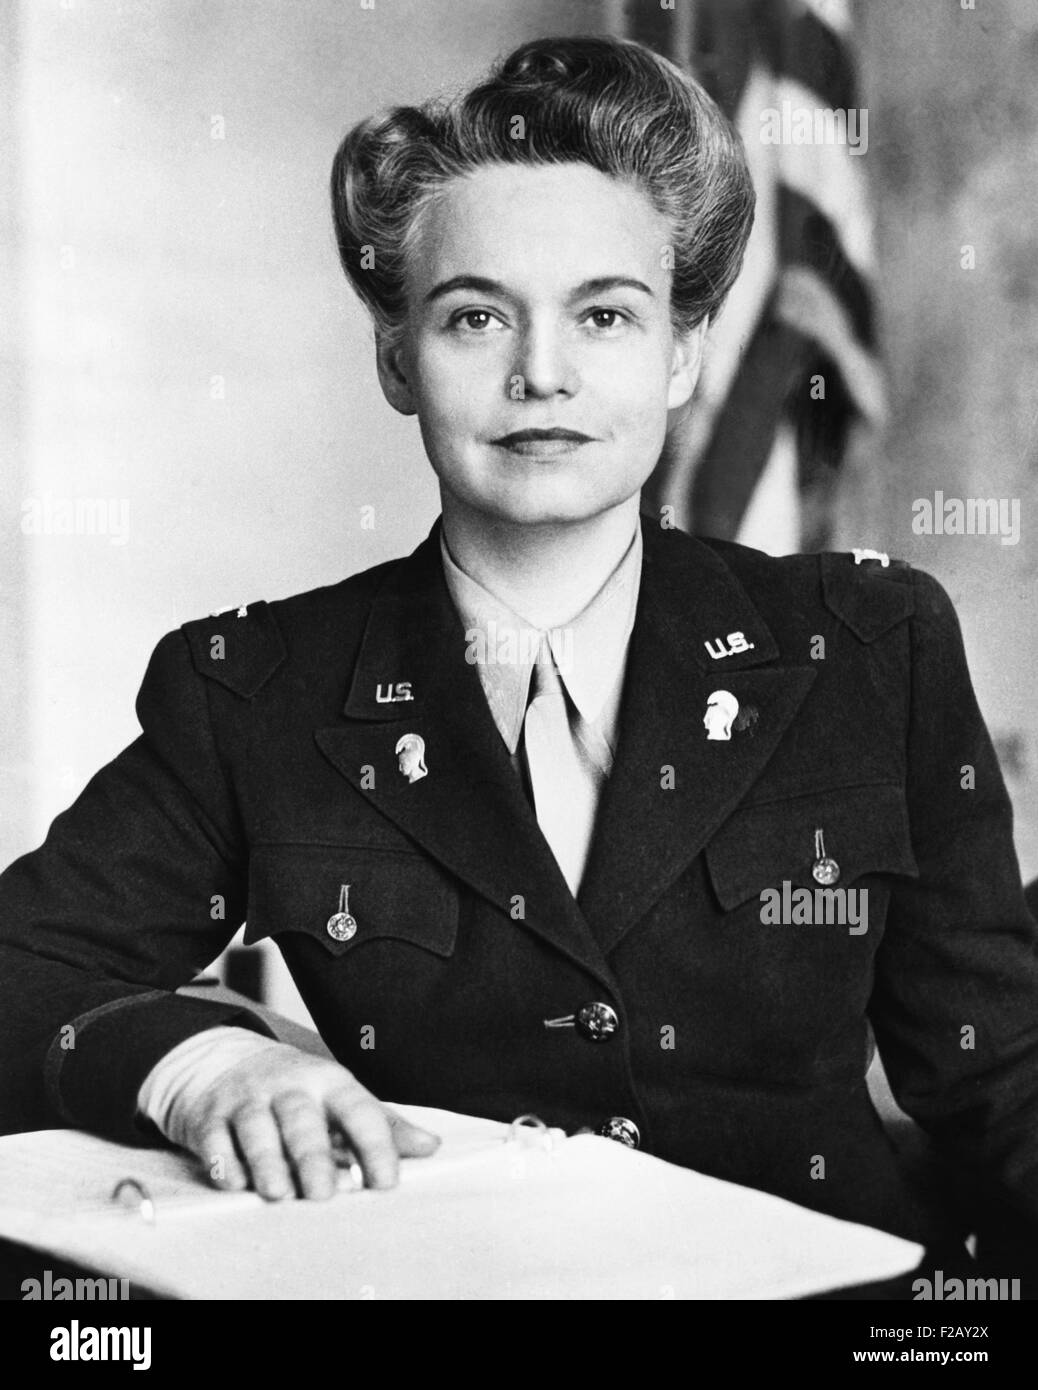 Colonel Oveta Culp Hobby, Commander of the U.S. Women's Army Corps during World War II. July 1943-July 1945. - Stock Image